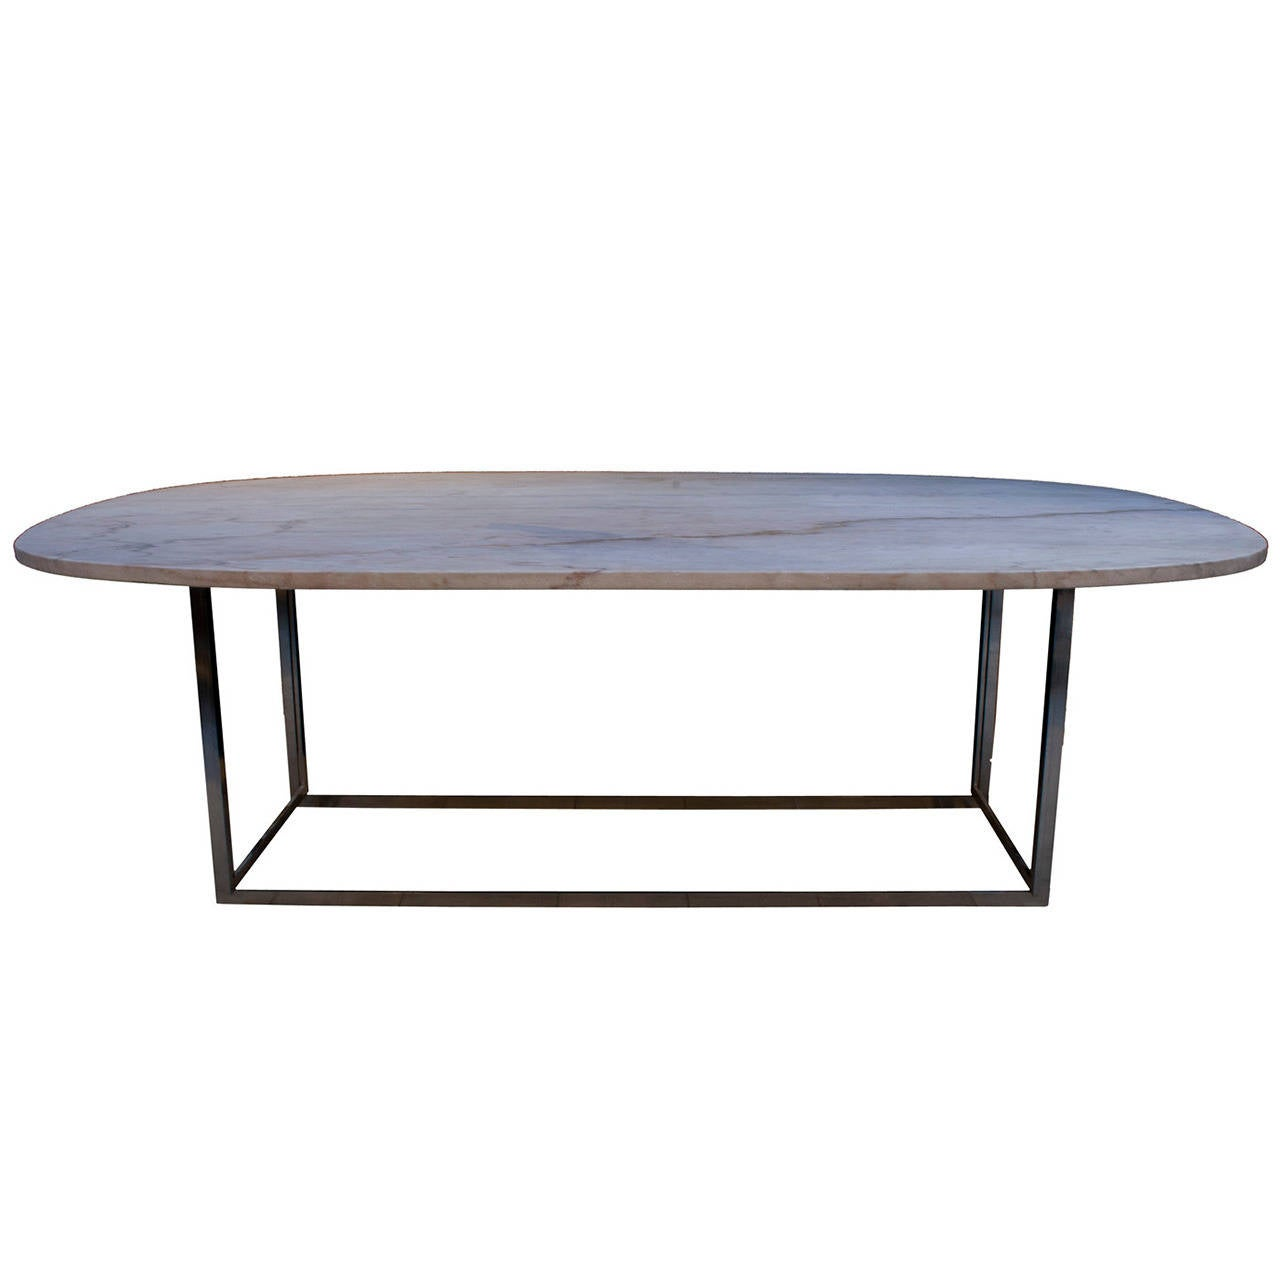 Stone top dining table at 1stdibs for The best dining tables